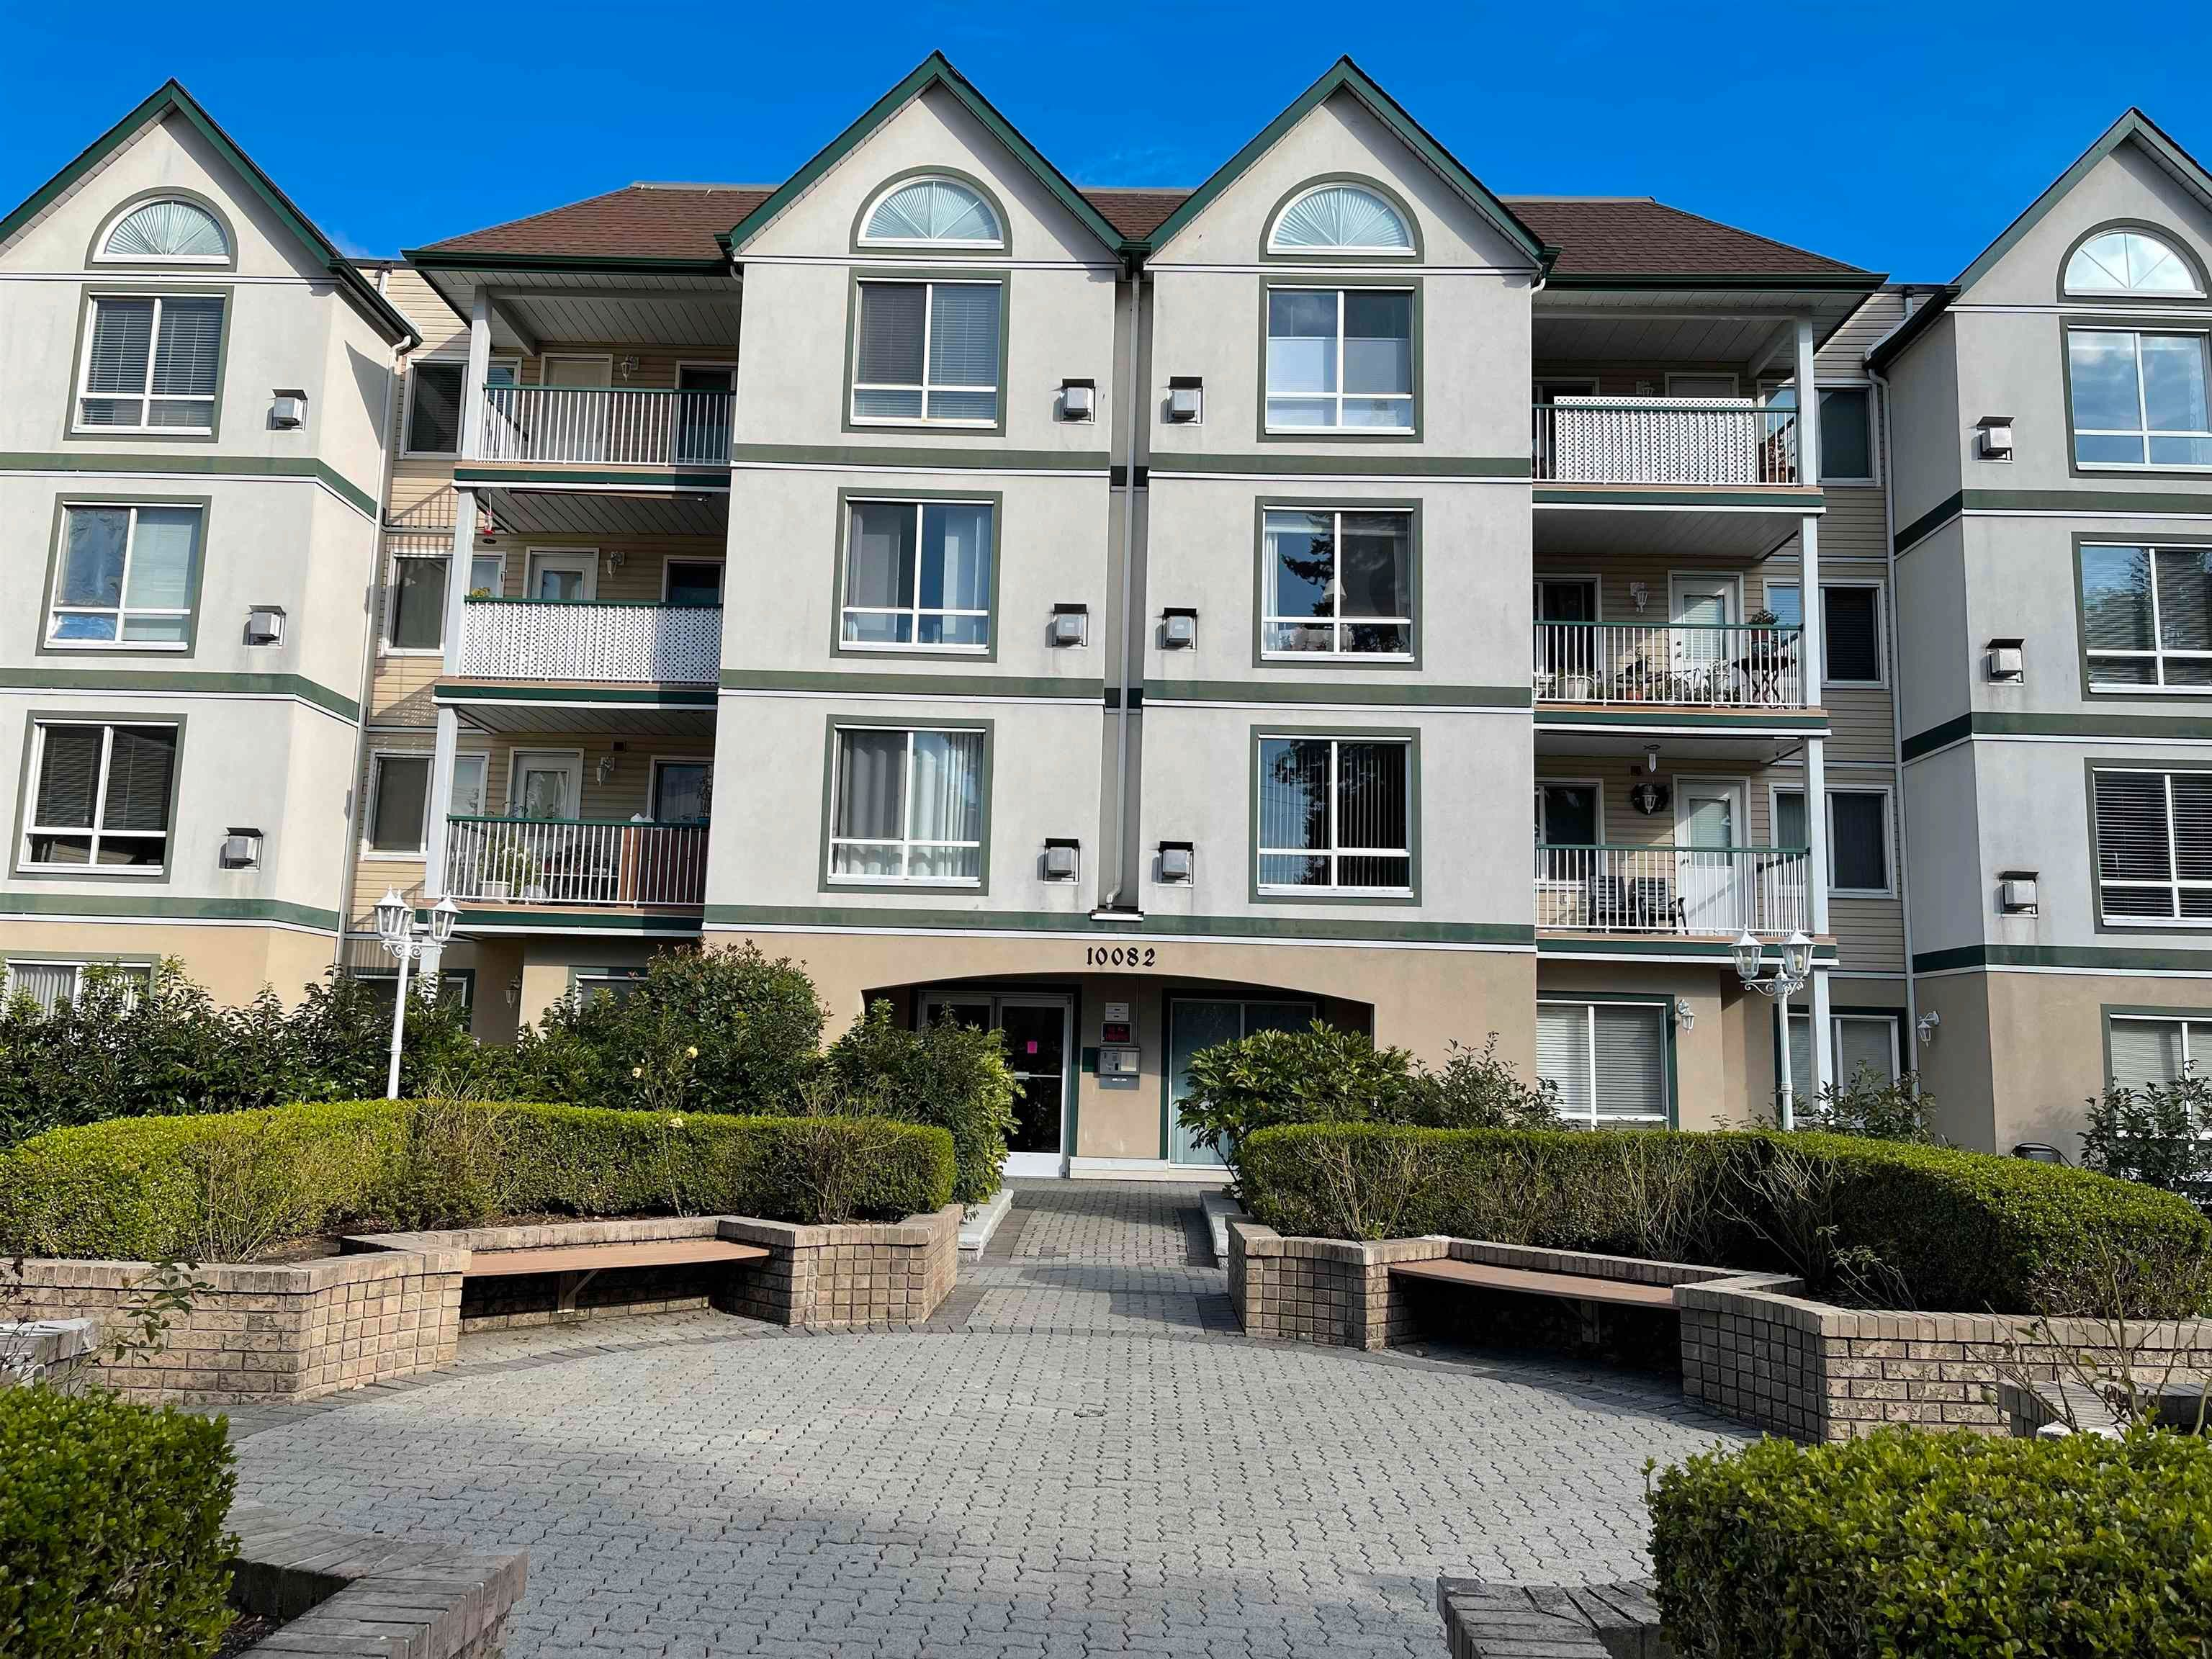 """Main Photo: 203 10082 132 Street in Surrey: Whalley Condo for sale in """"MELROSE COURT"""" (North Surrey)  : MLS®# R2623743"""